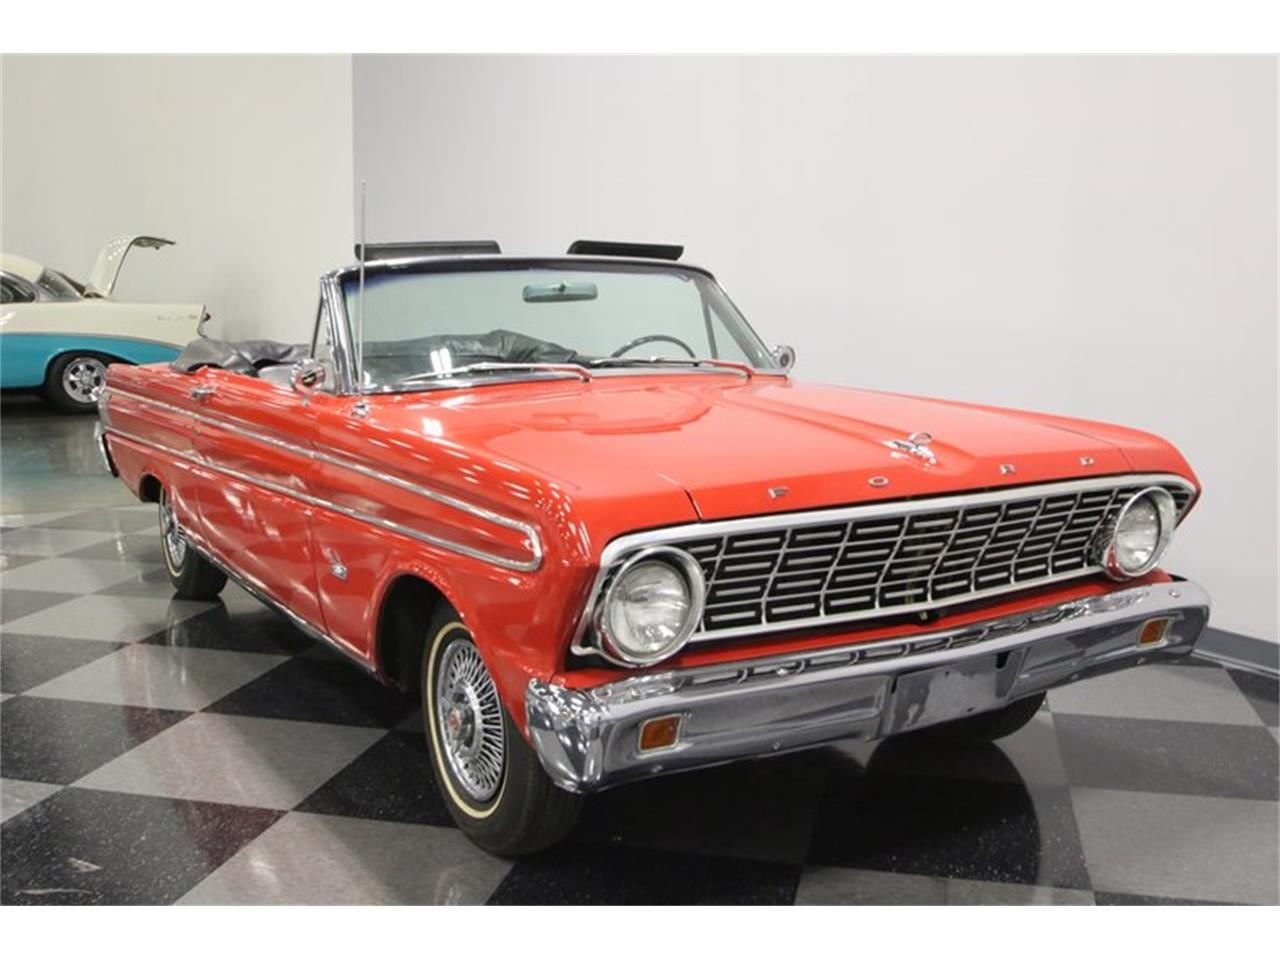 1964 Ford Falcon Futura for sale in Lavergne, TN – photo 17